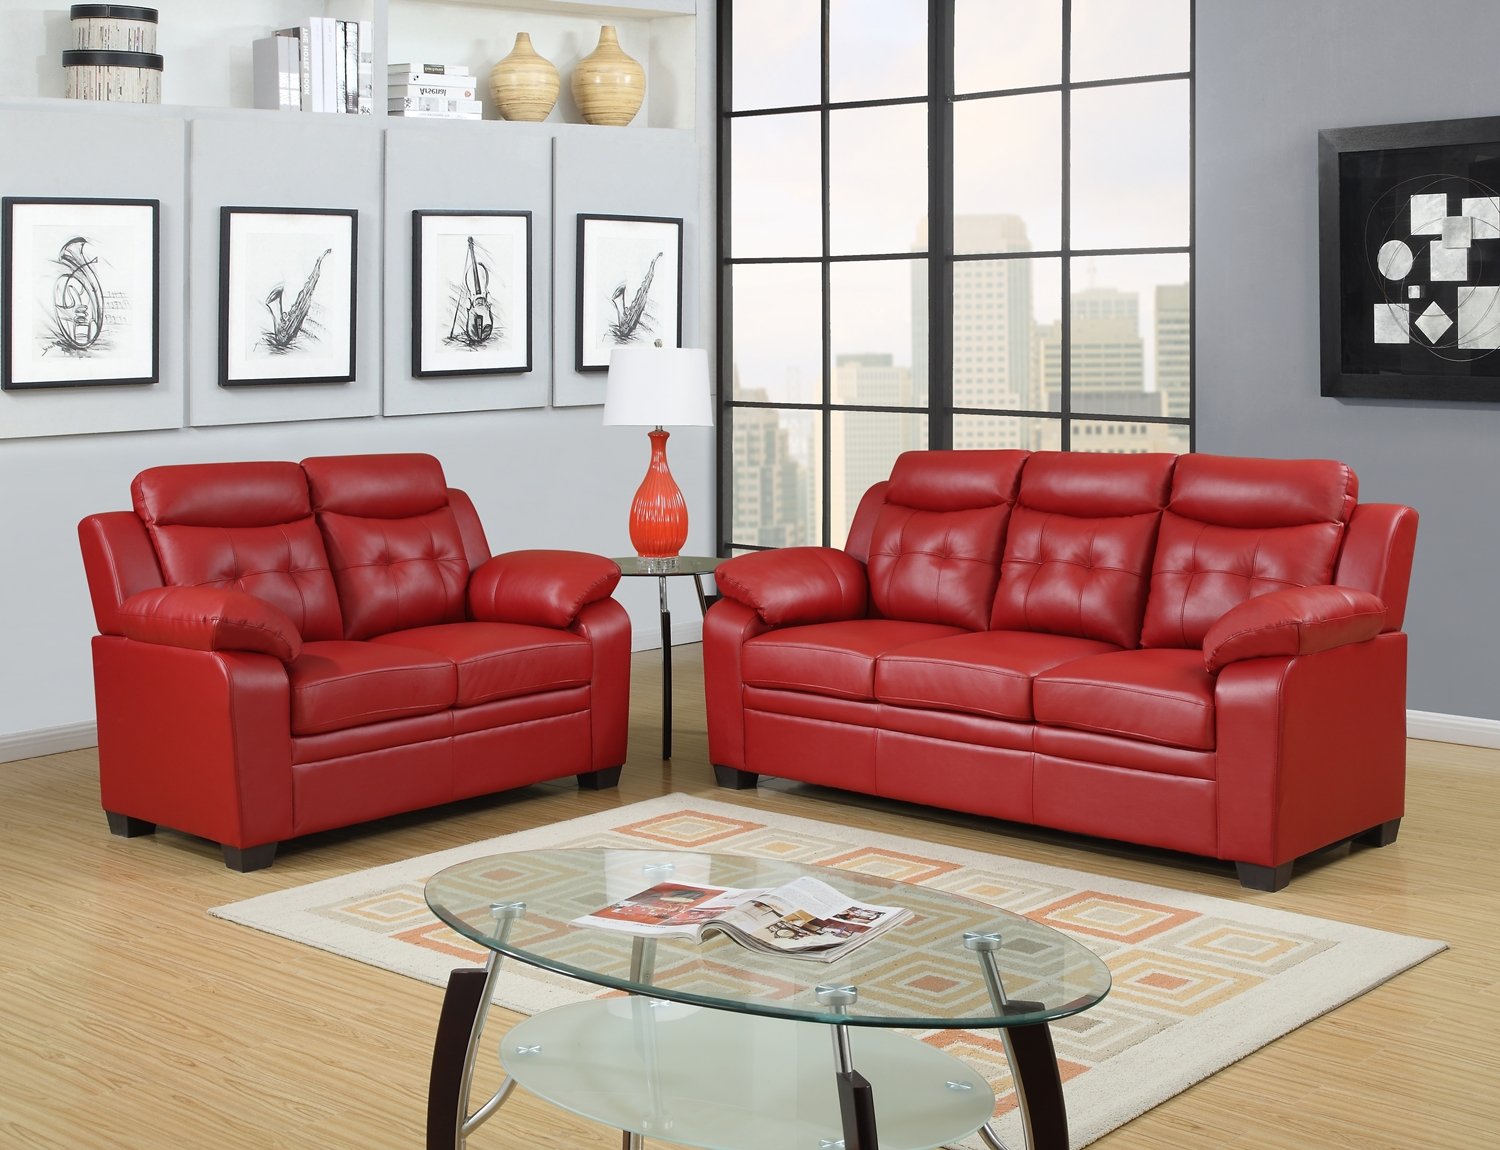 red leather living room furniture roselawnlutheran. Black Bedroom Furniture Sets. Home Design Ideas